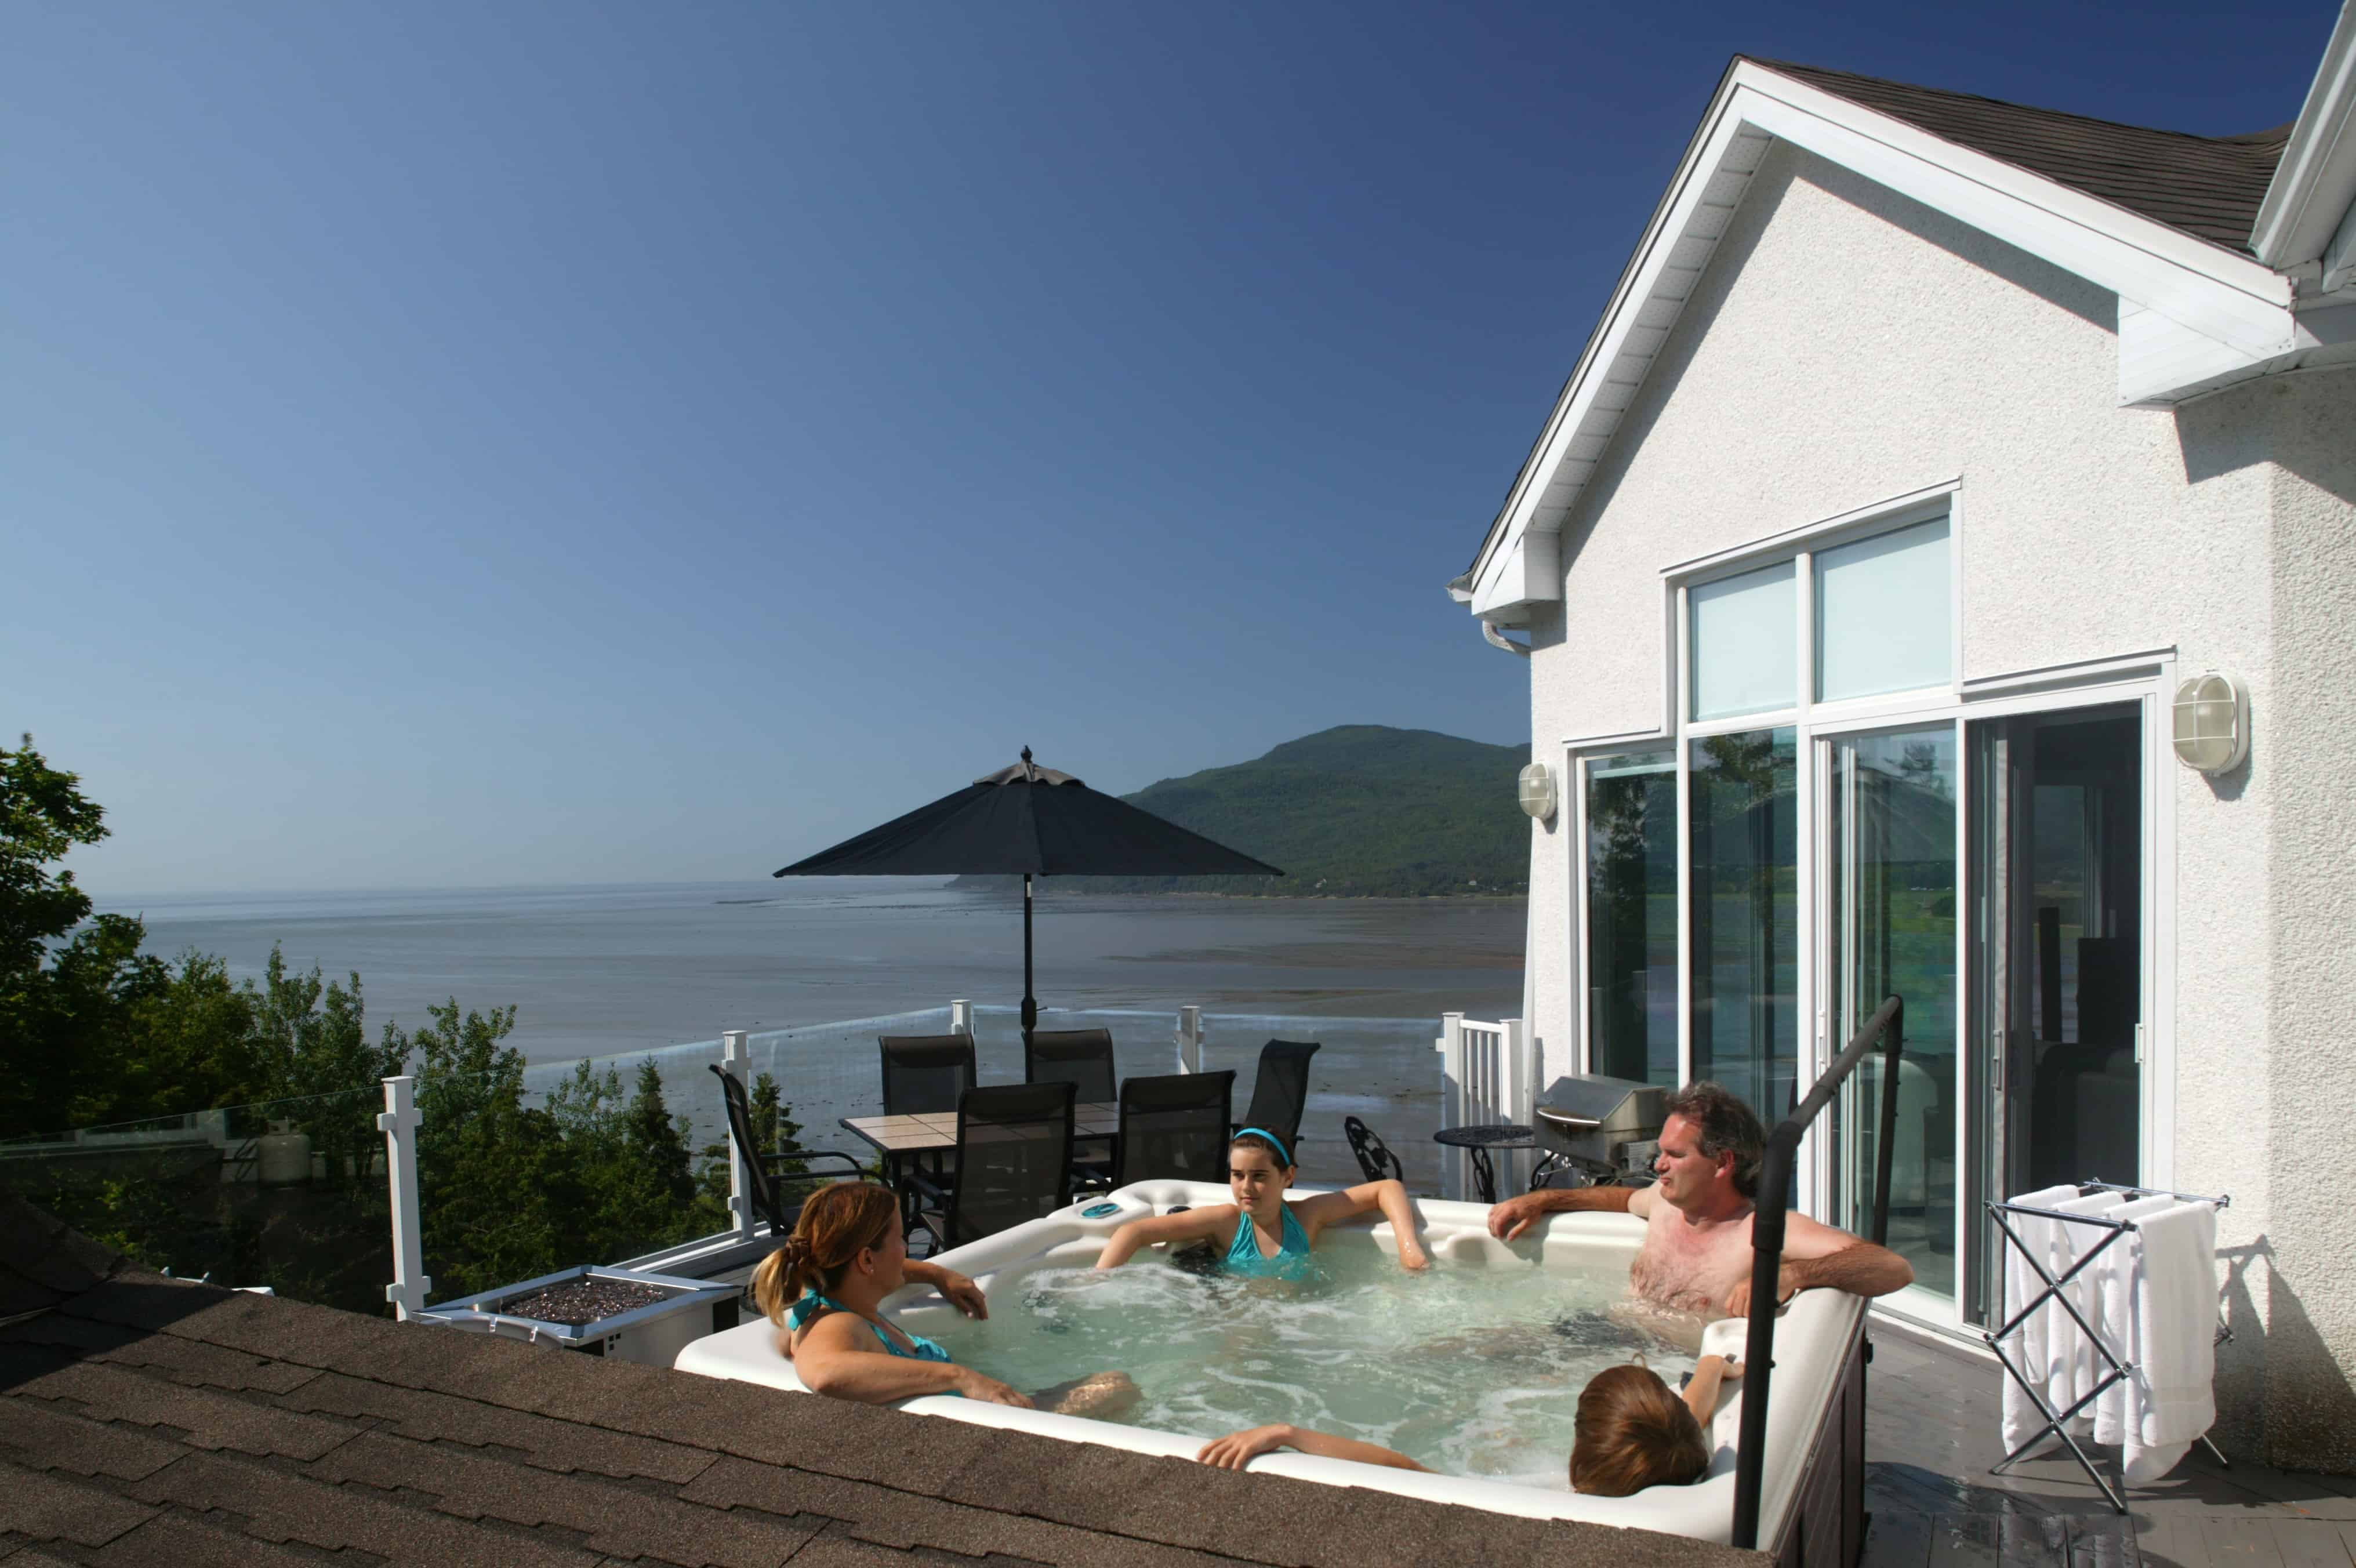 a group of friends relaxing in a hot tub that overlooks the ocean